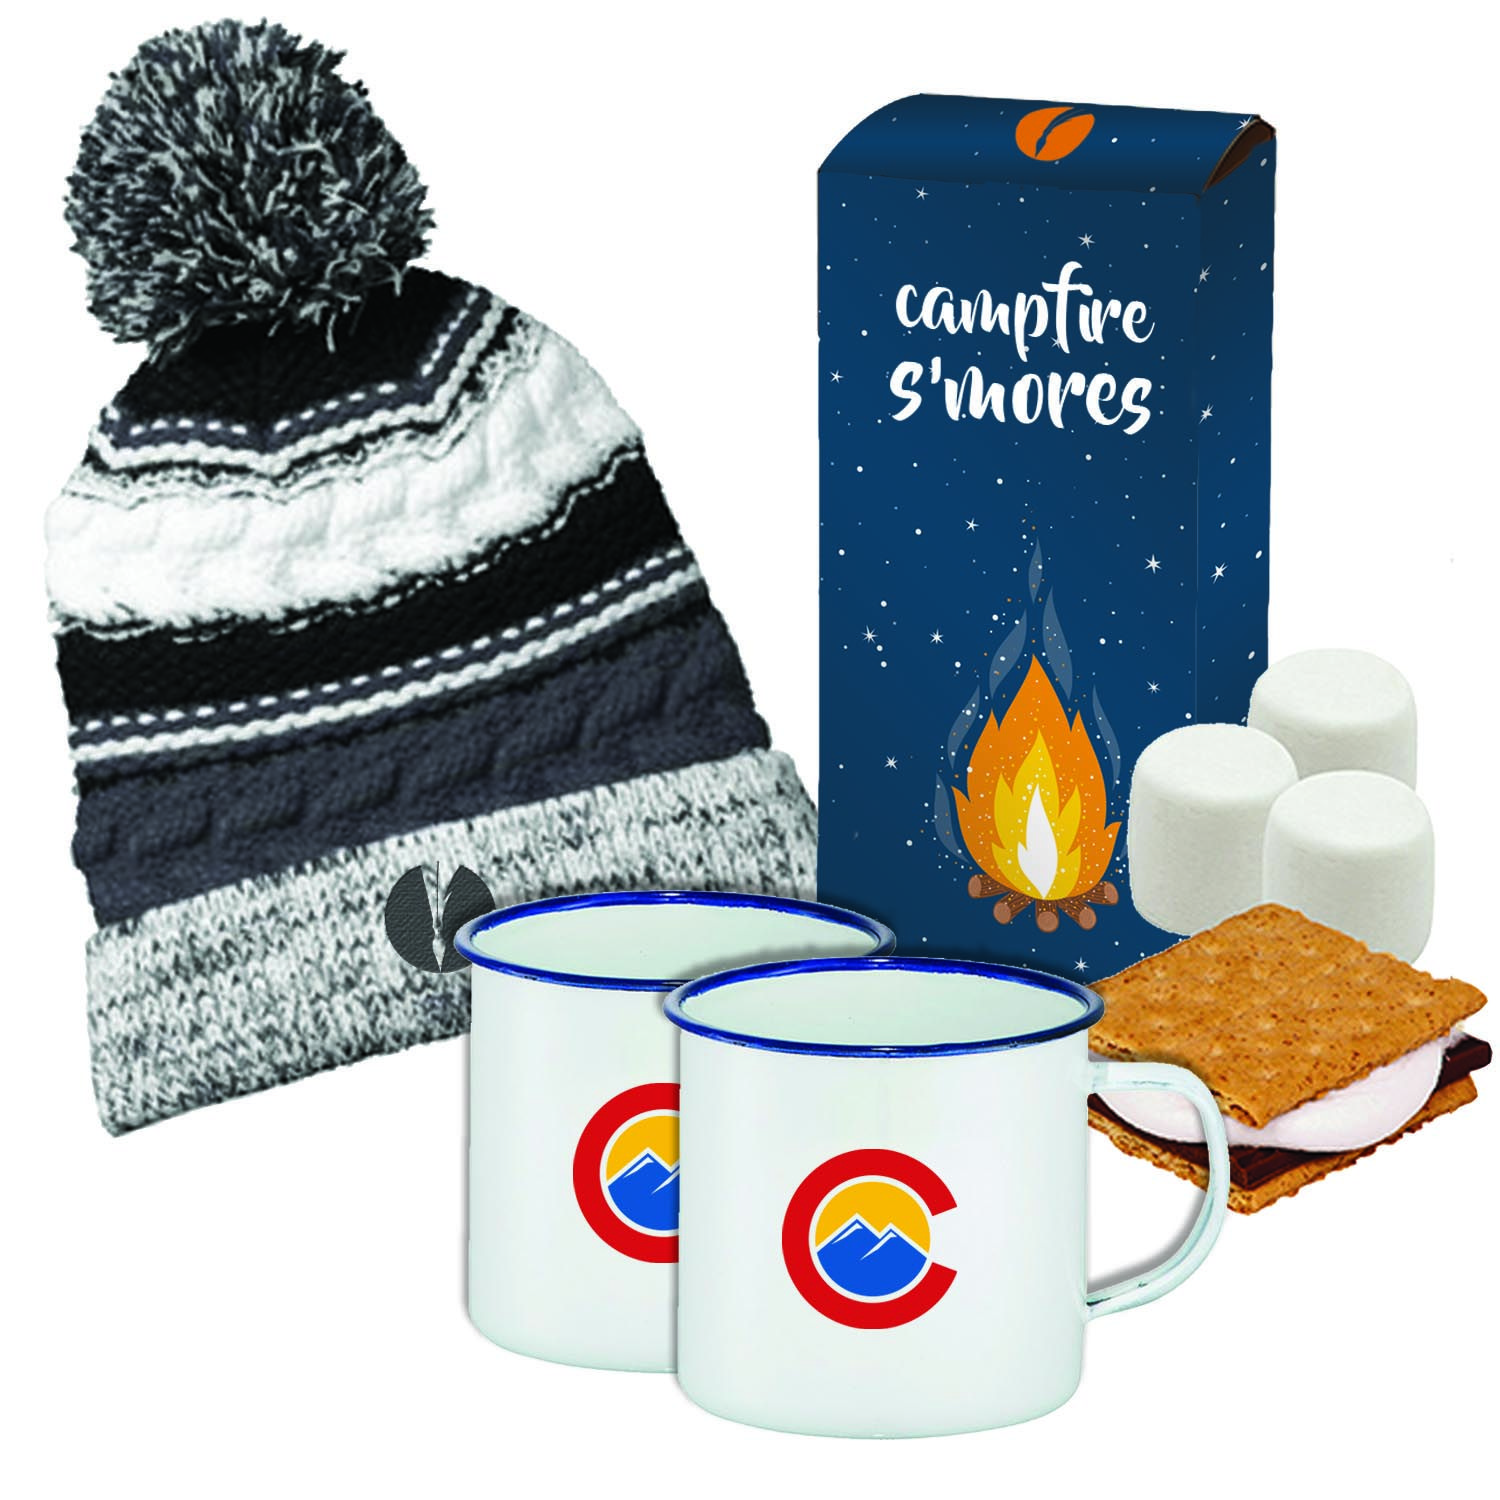 How adorable is this Campfire S'mores Kit? This bundle of items is perfect for cozying up by the fire. Check out the rest of our favorite things of 2016 on the blog.